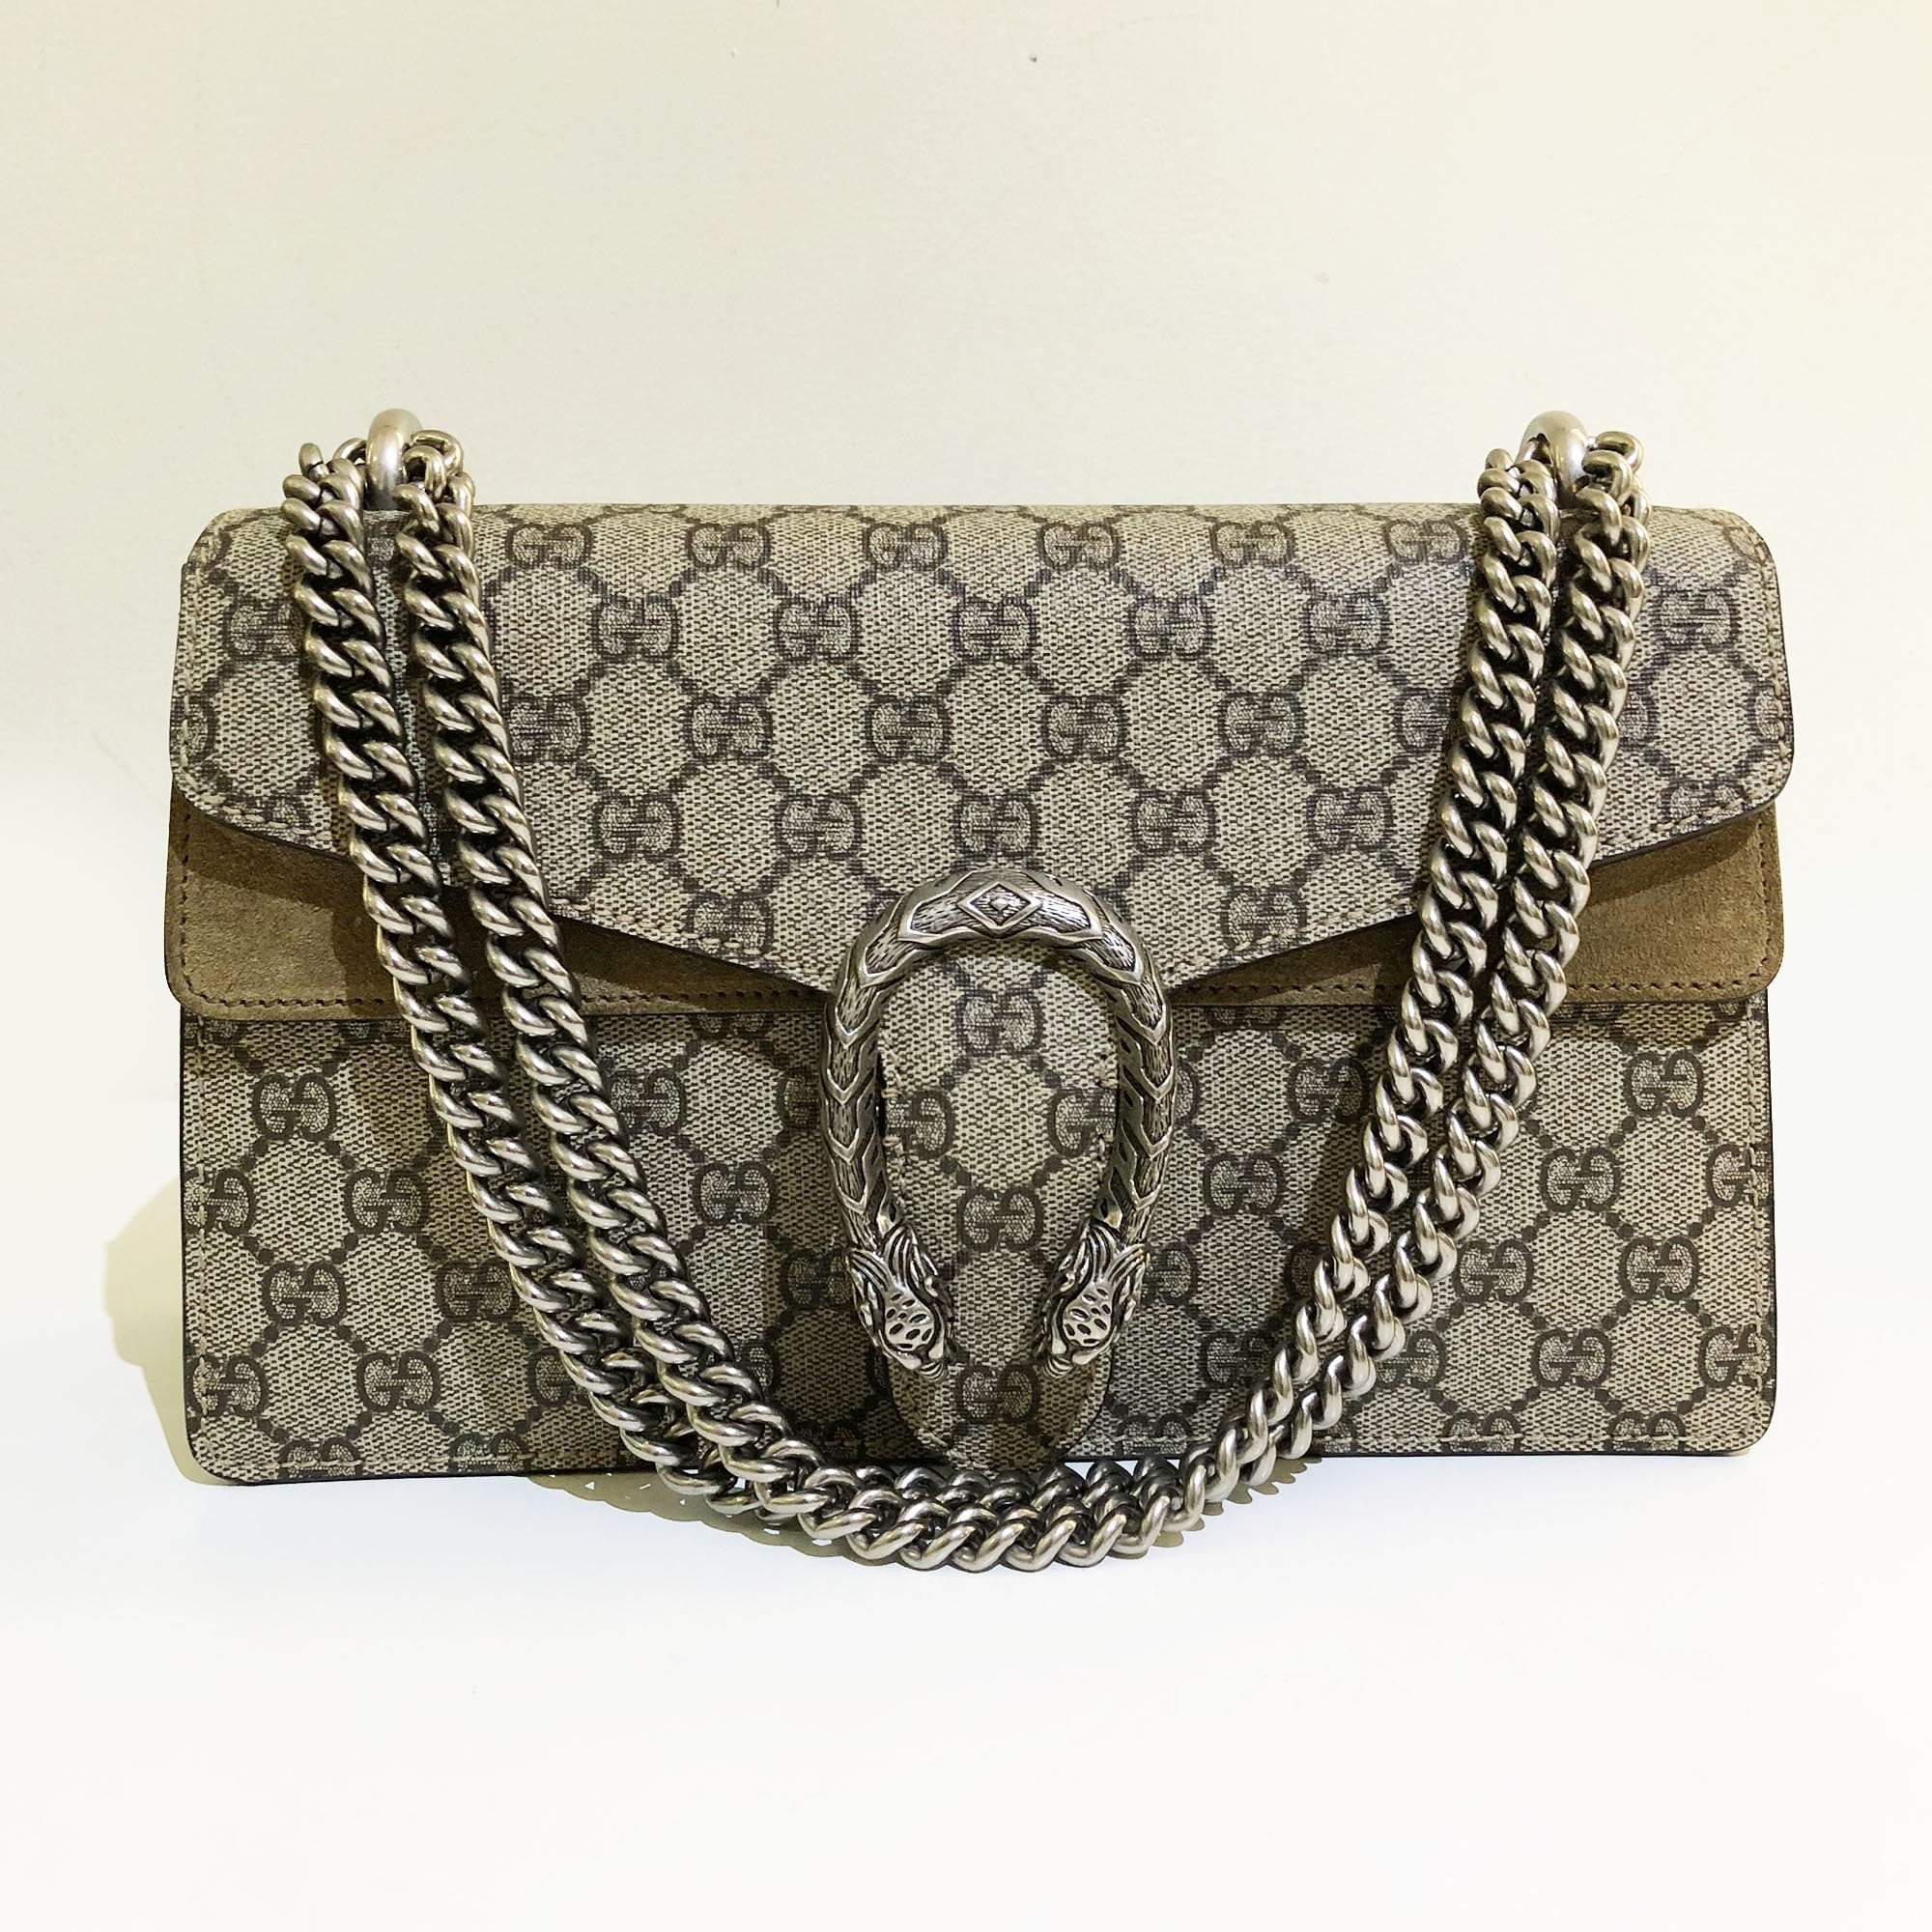 29c761be5d Gucci Beige Dionysus GG Supreme Suede Shoulder Bag – Garderobe